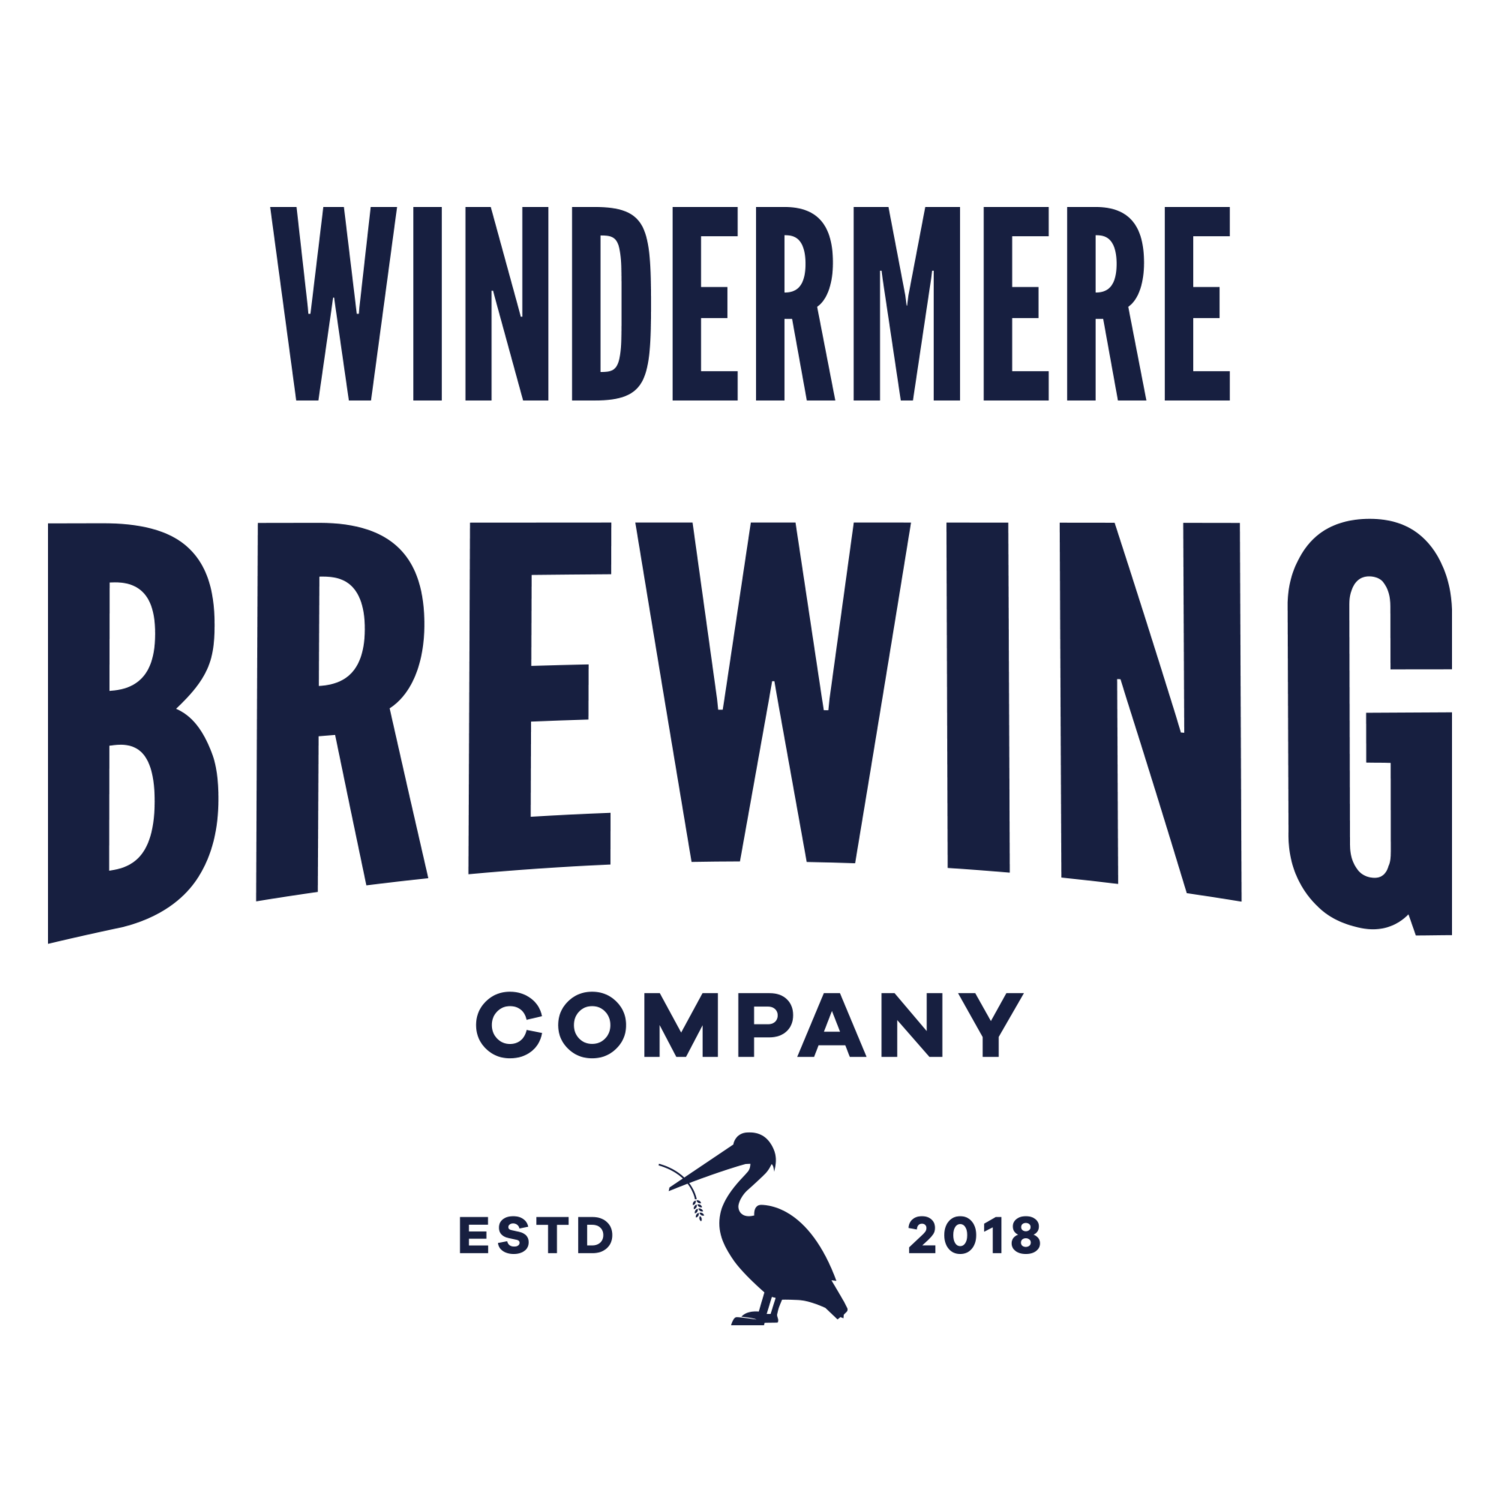 Windermere Brewing Company